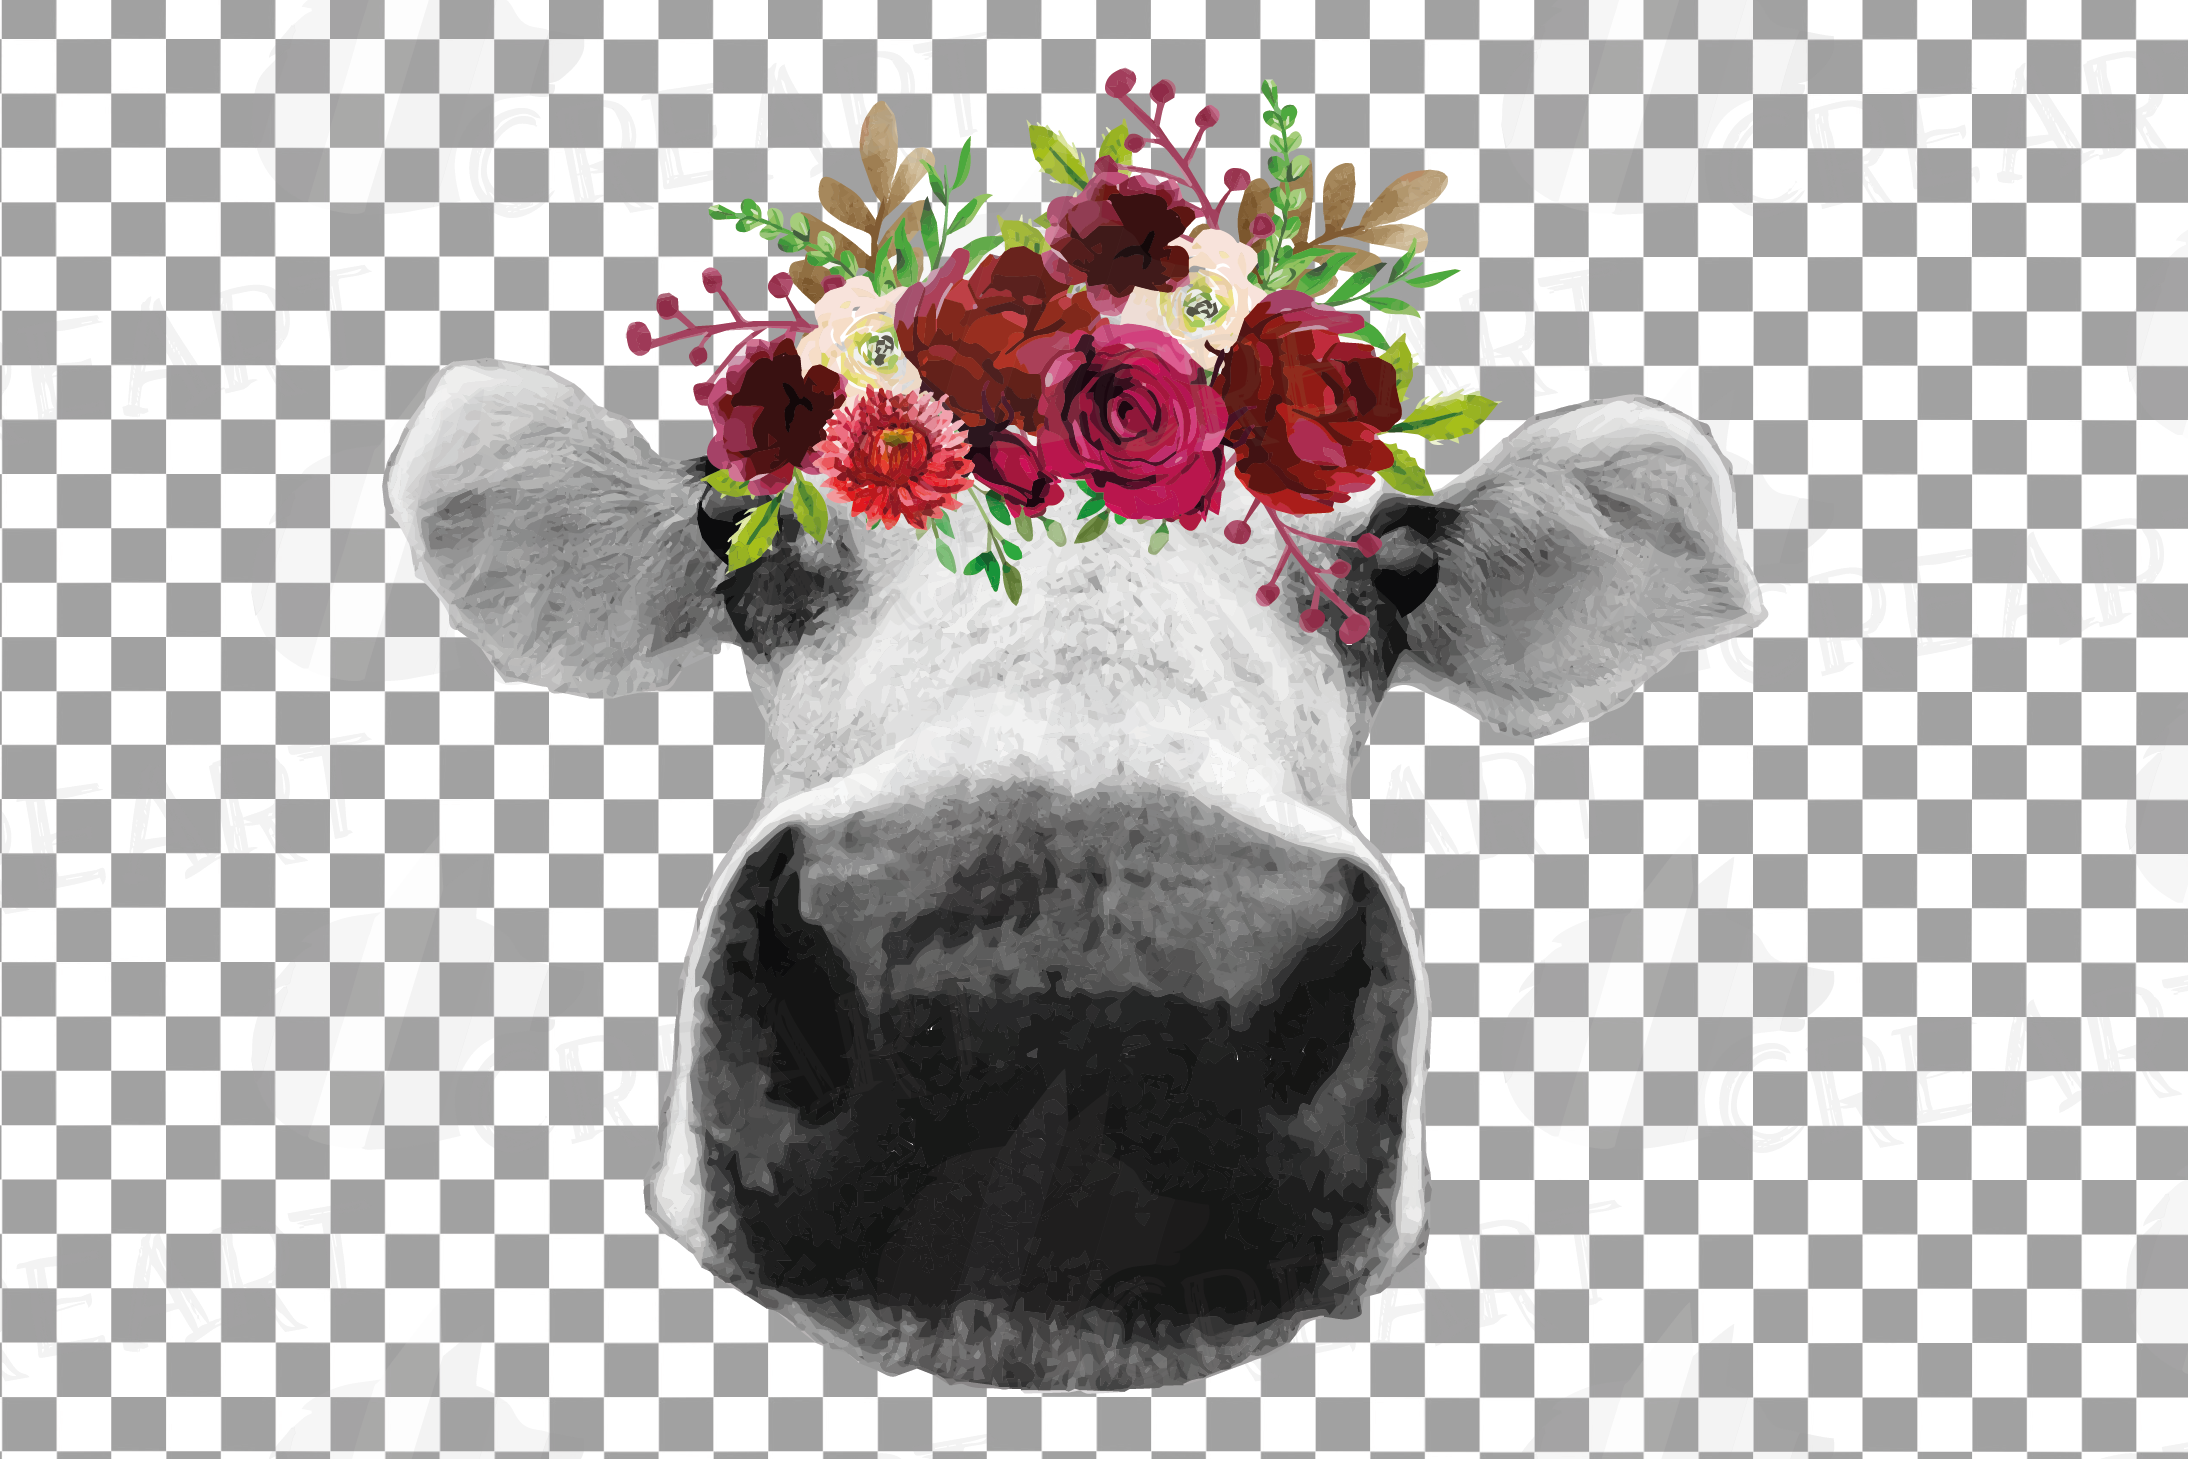 Not today Heifer printable floral burgundy decor, floral cow example image 18